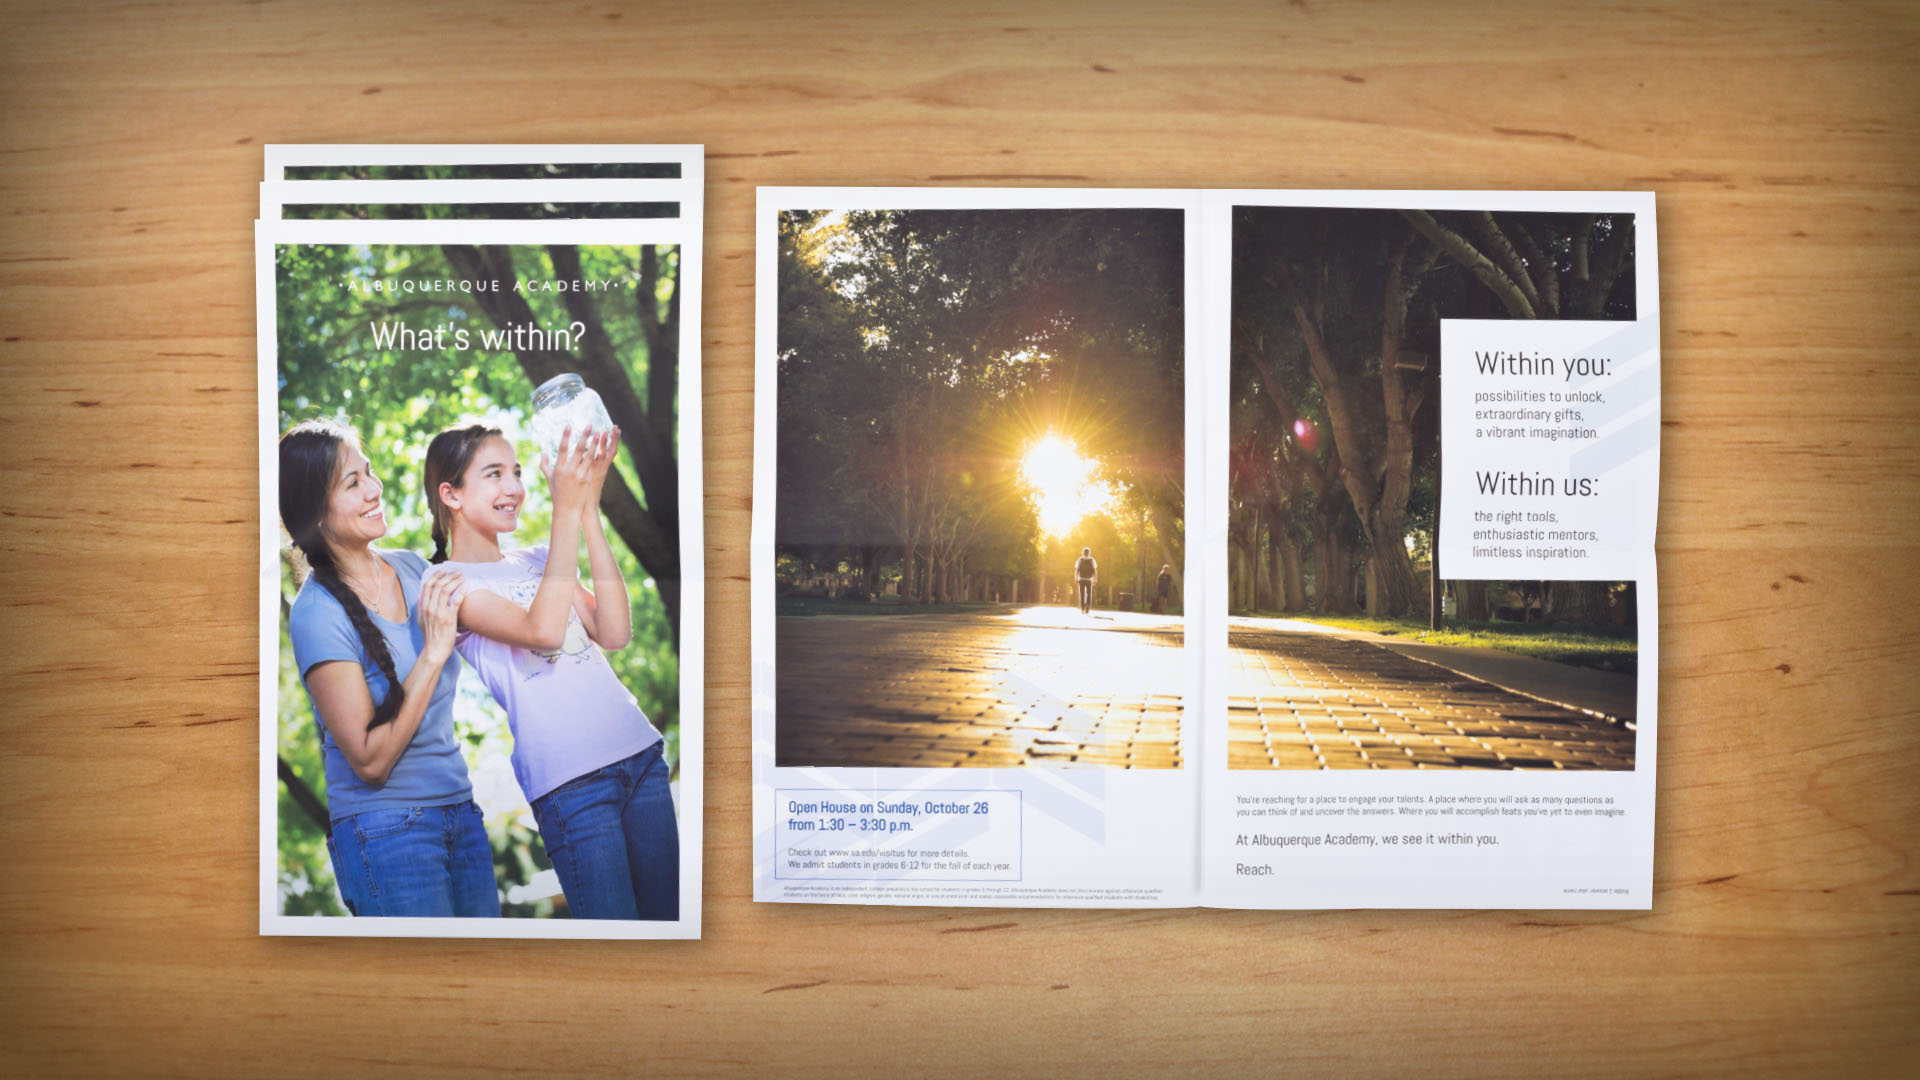 Albuquerque-Academy-Branding-Marketing-Admissions-Campaign-Direct-Mail-7.jpg